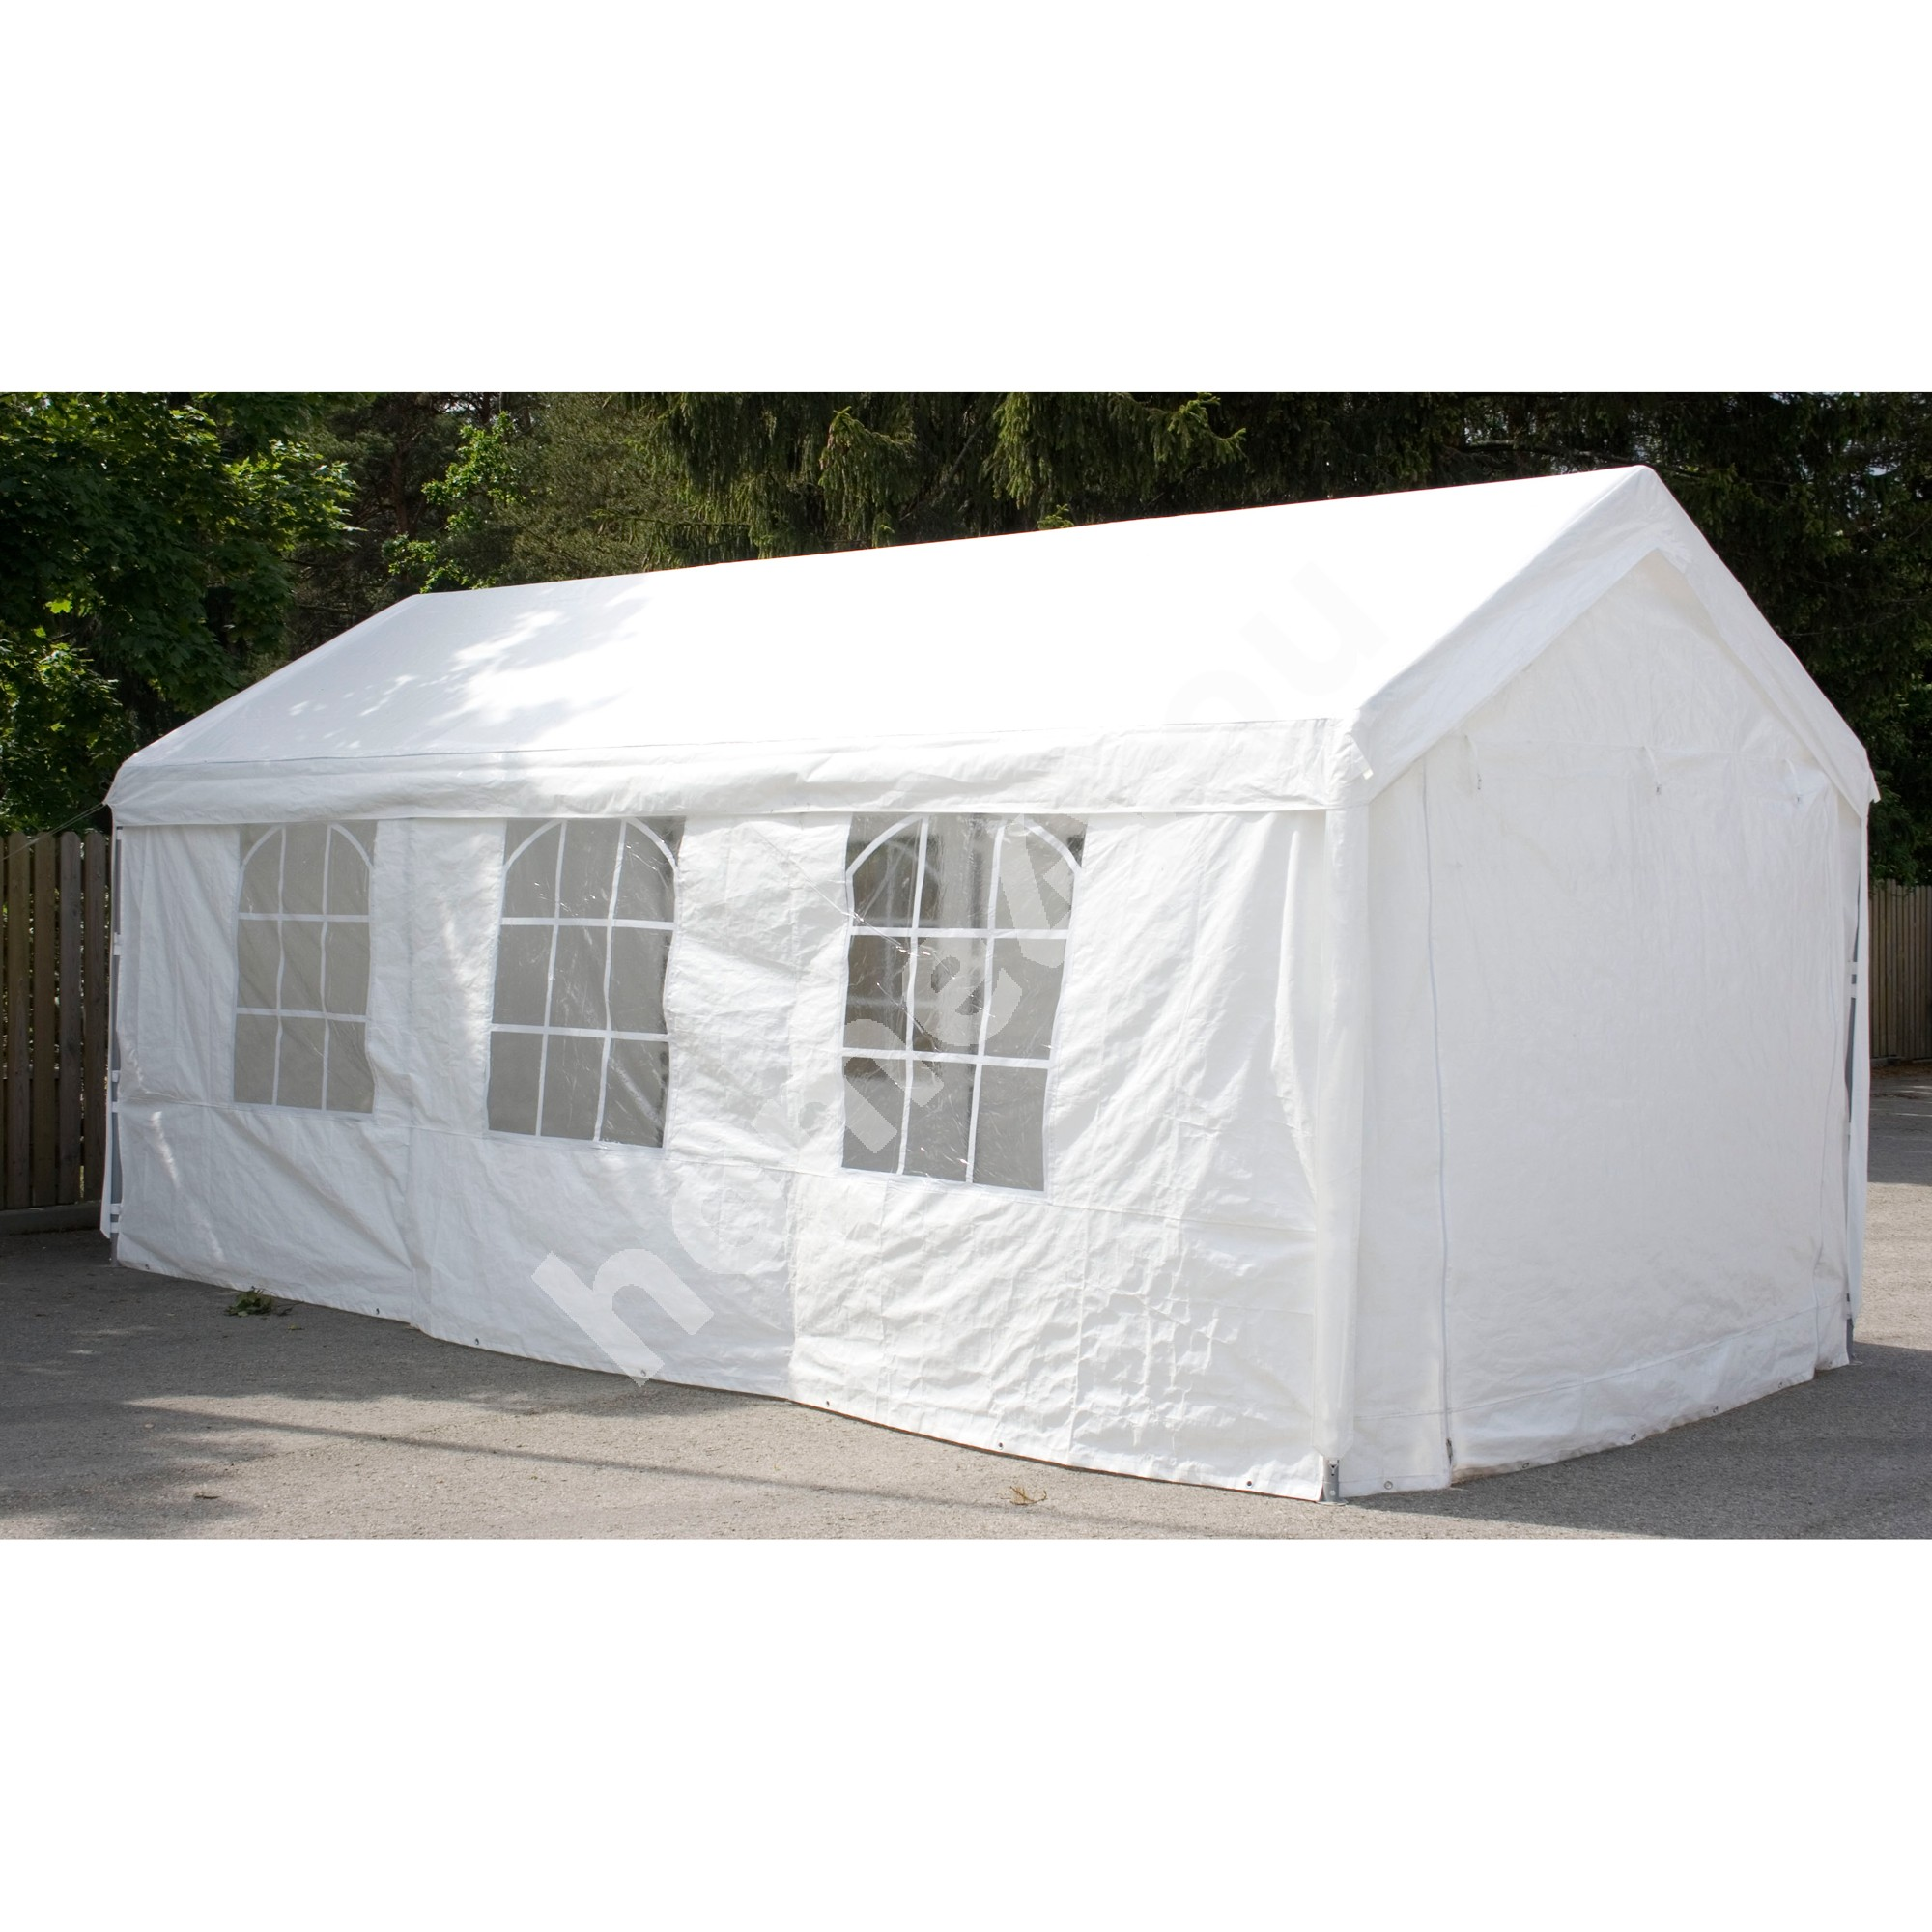 Party tent 3x6m, steel frame, cover: polyethylene, color: white